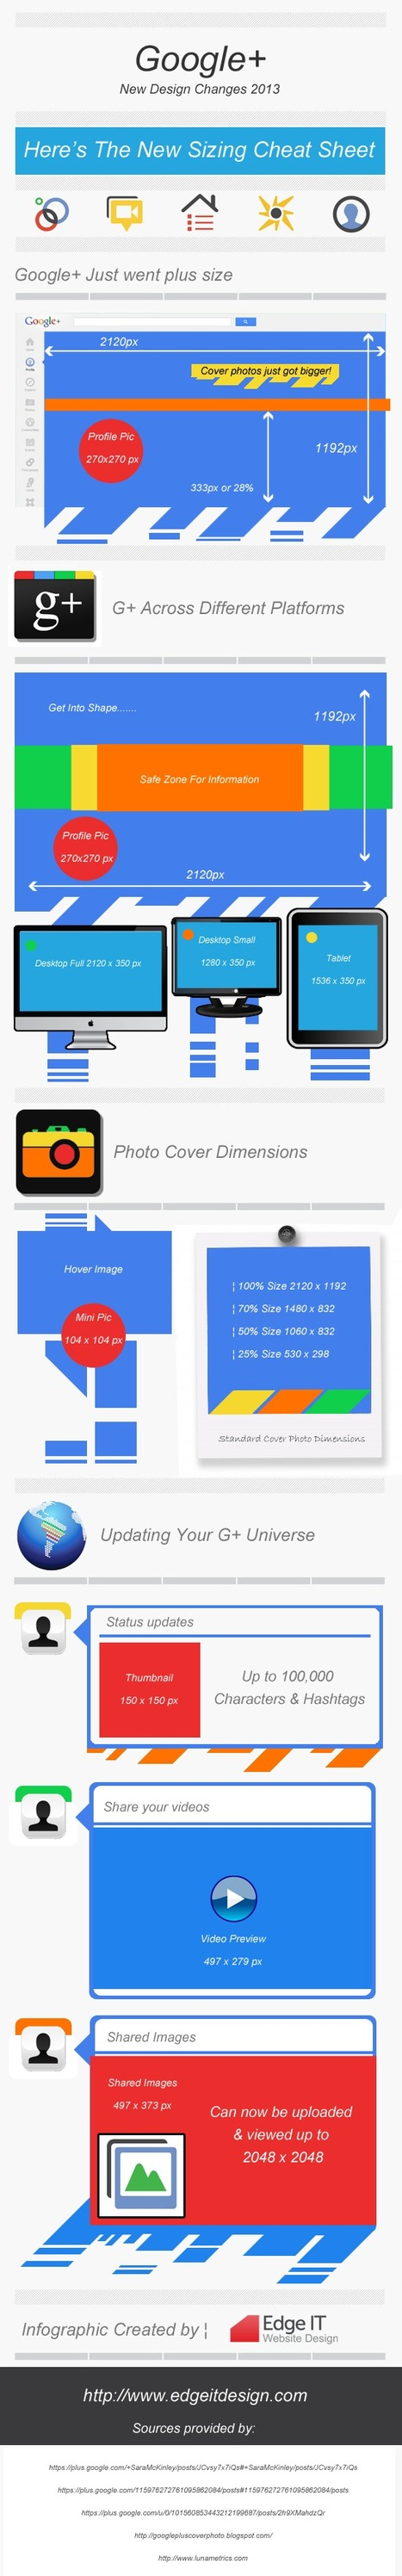 Google+ Design Cheat Sheet [Infographic] | AQA BUSS 4 Google | Scoop.it